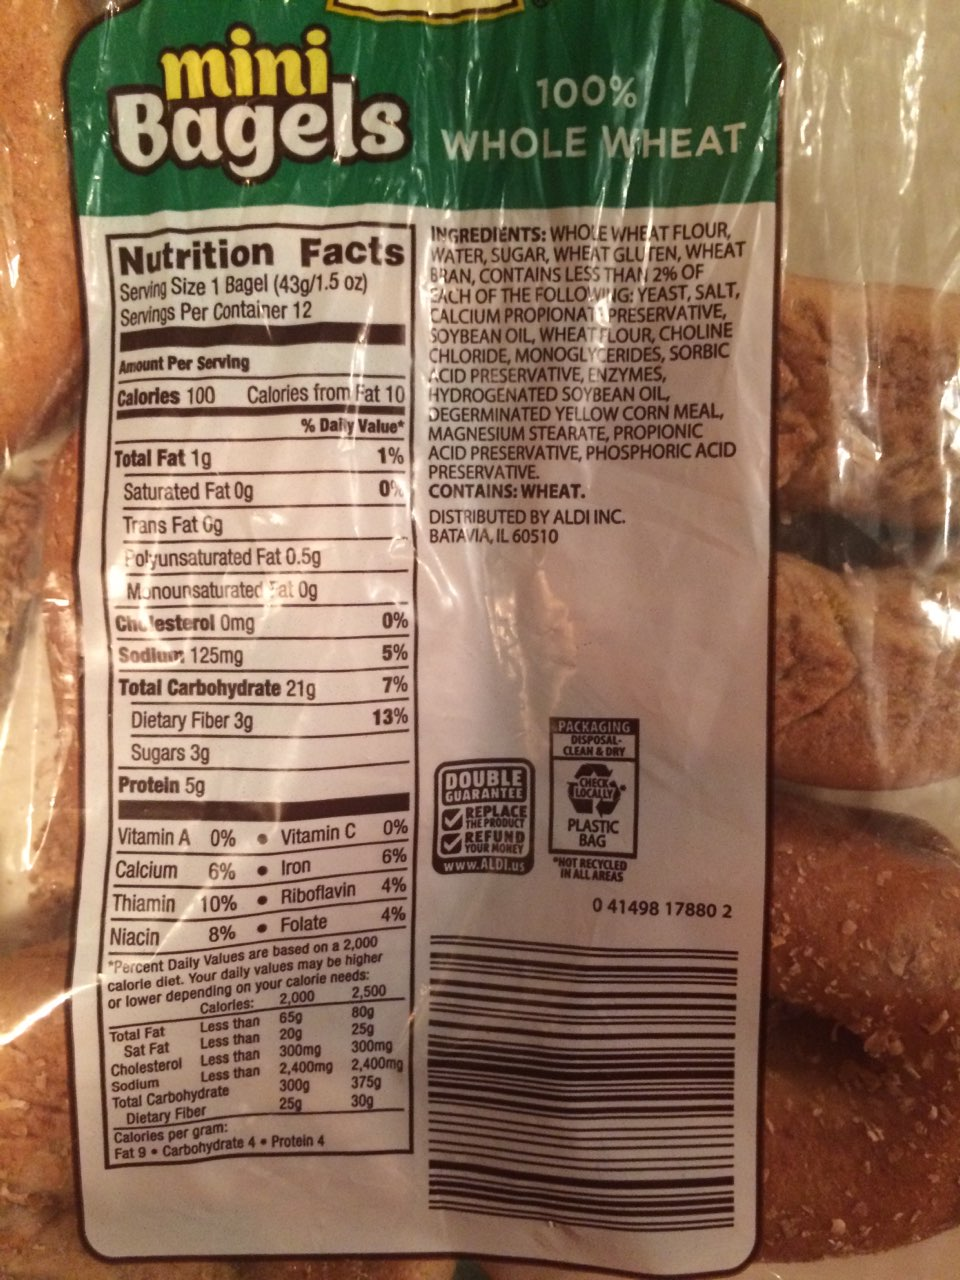 Sprouted Wheat Bagels |Whole Wheat Bagel Nutrition Facts